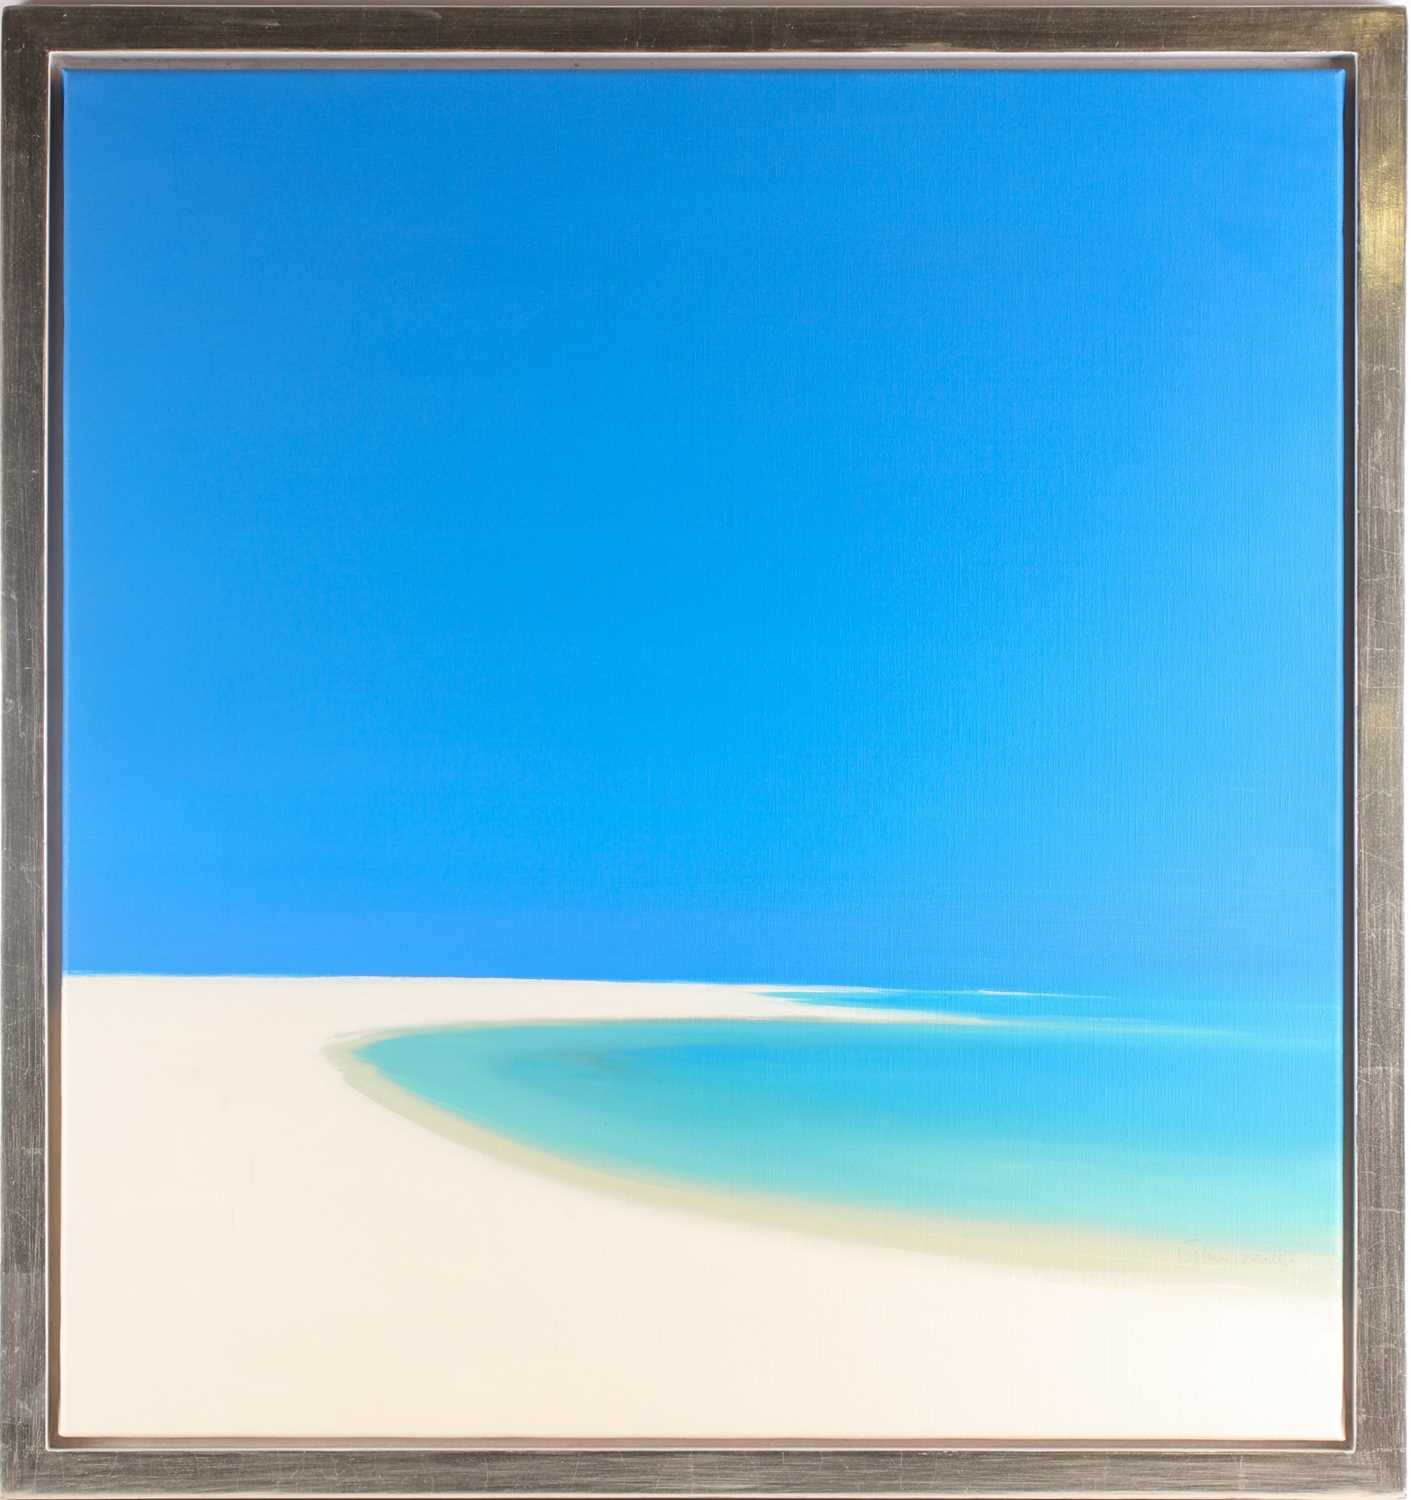 John Miller (1931-2002), Quiet Beach, oil on canvas, signed, titled and inscribed verso, 75.5cm x